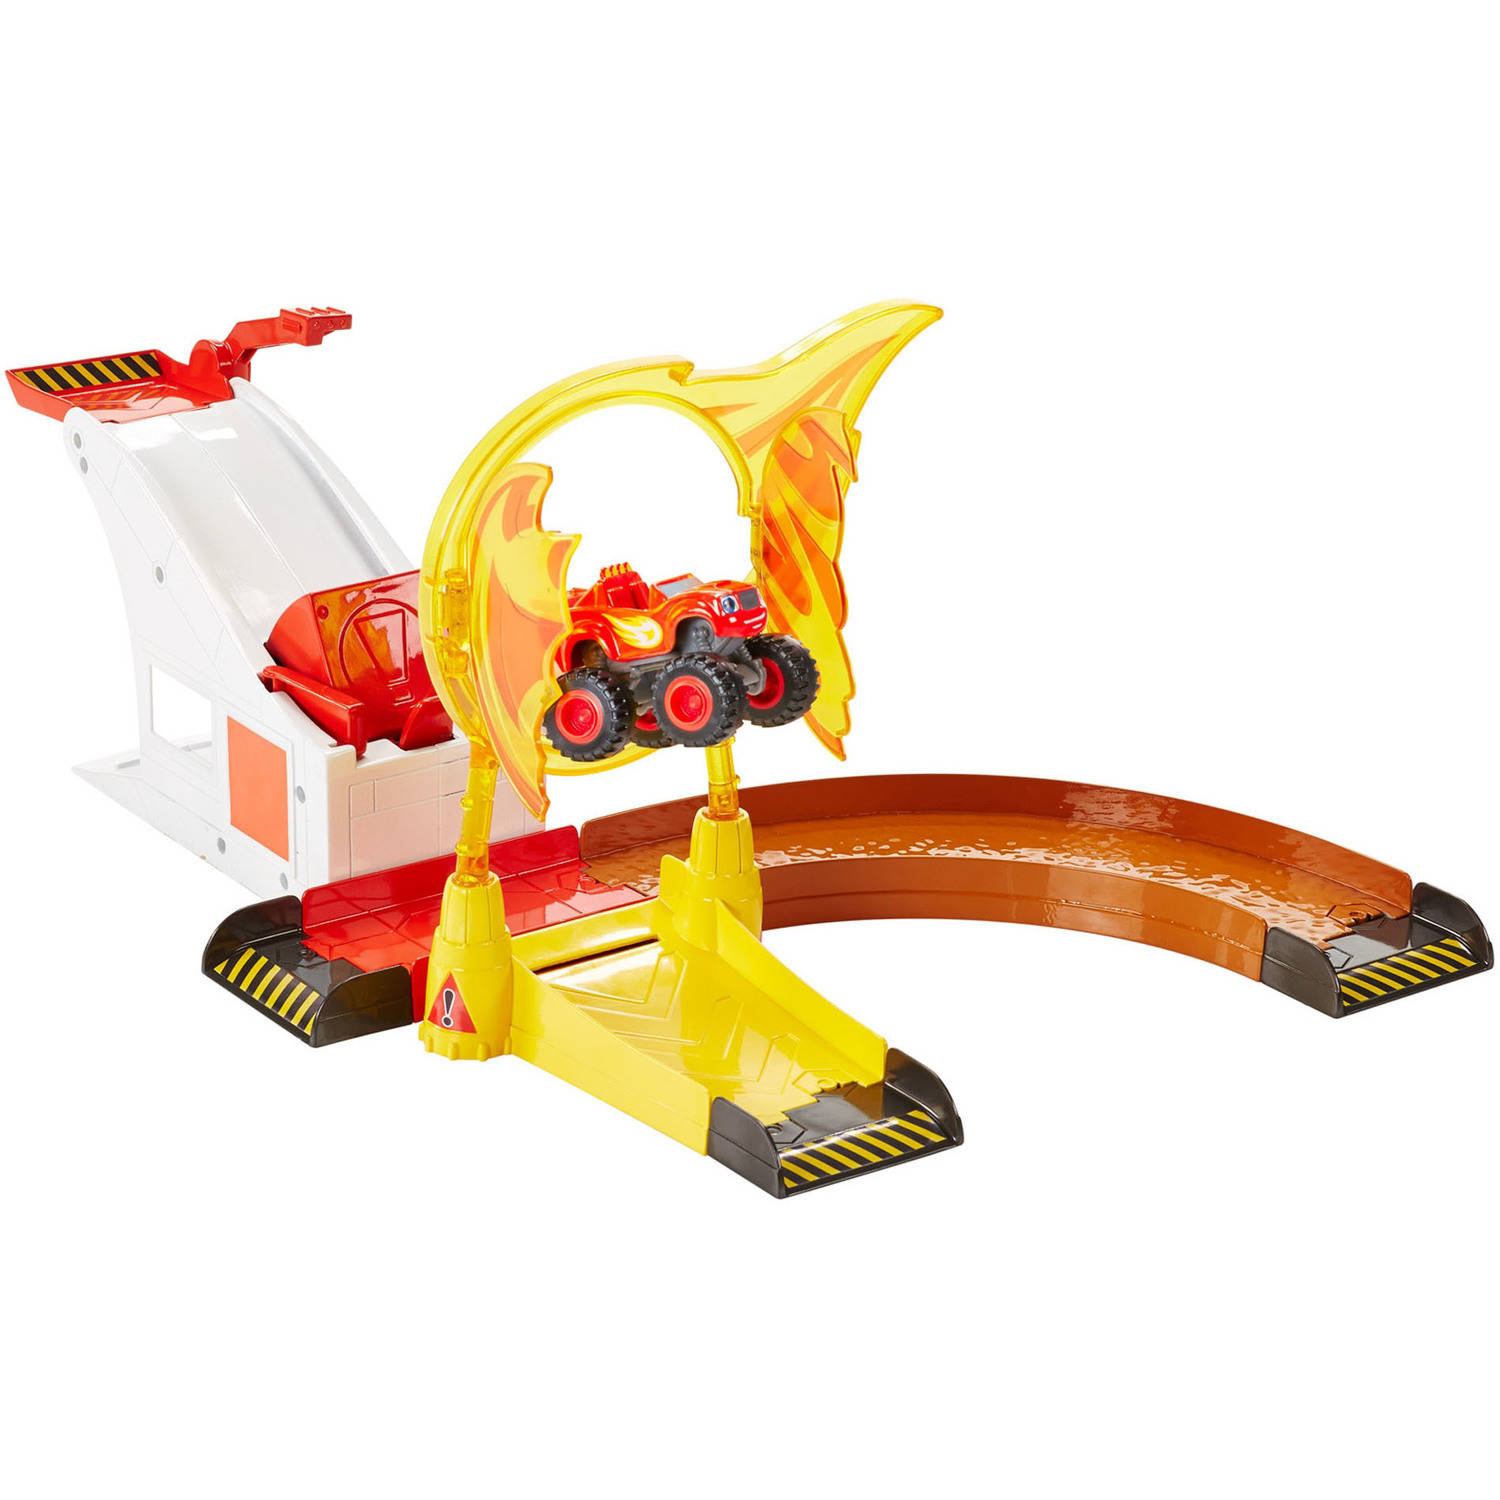 Nickelodeon Blaze and the Monster Machines Flaming Stunts Blaze by FO SHAN CITY NANHAI MATTEL